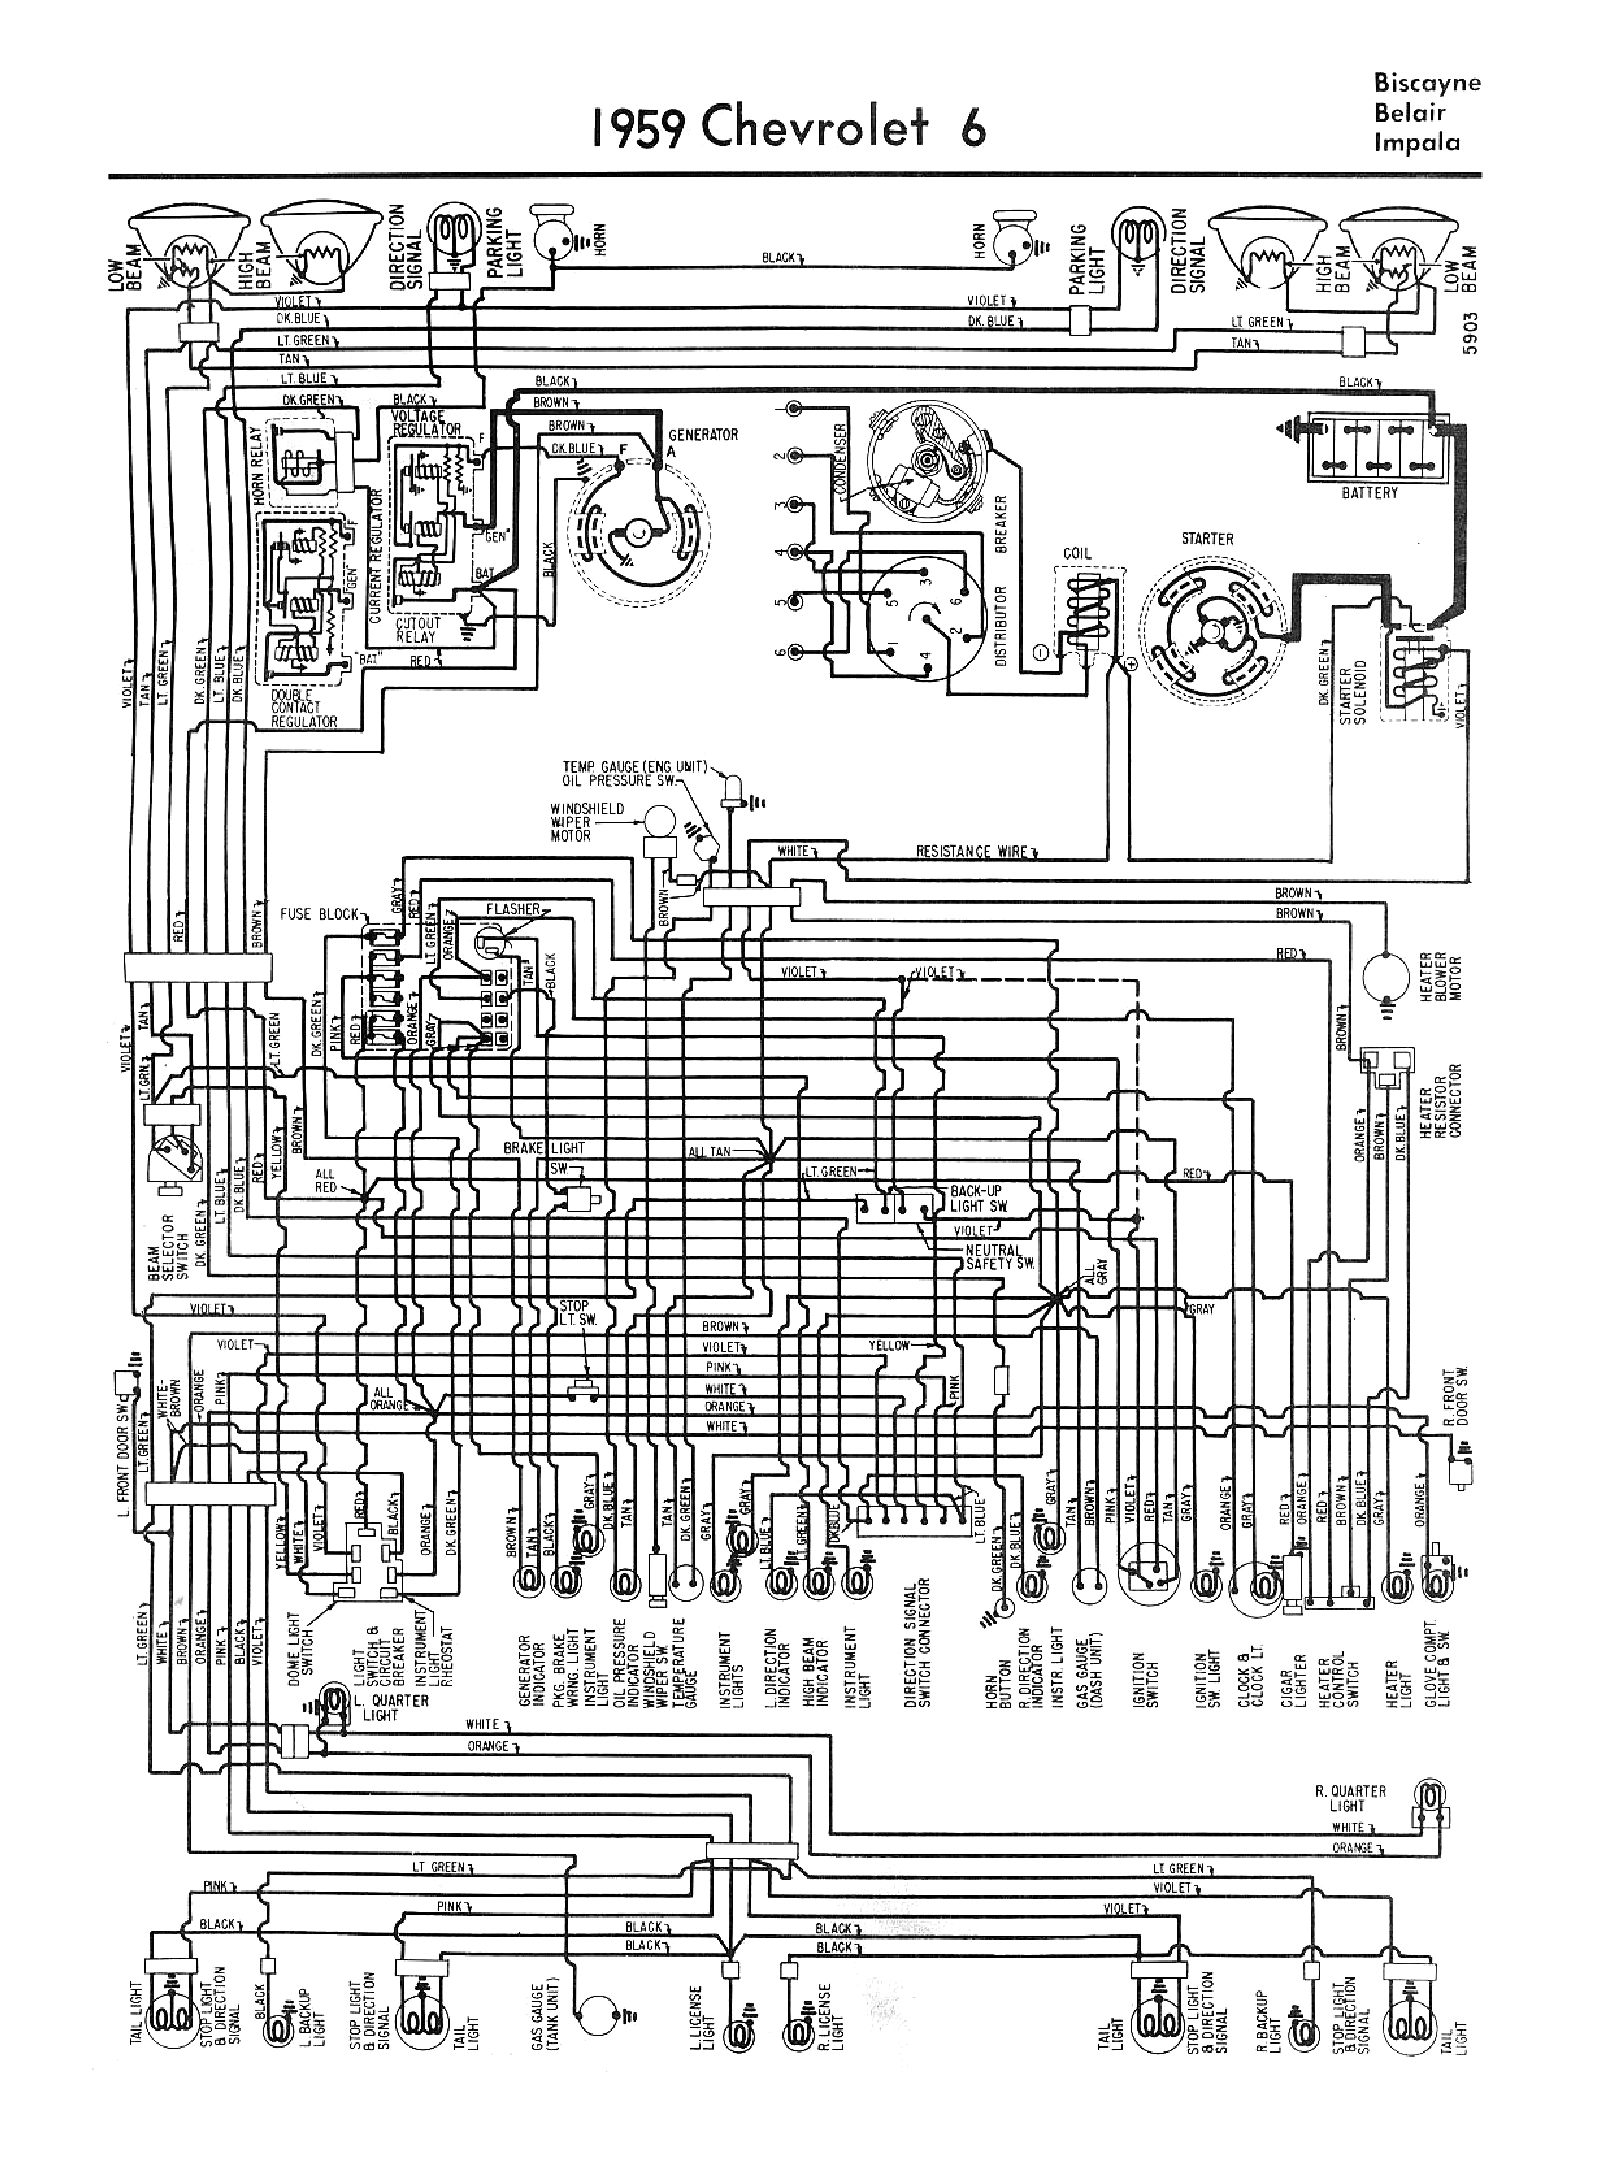 1959 Corvette Wiring Diagram Reinvent Your Chevy Silverado 1988 Diagrams Rh Oldcarmanualproject Com 1973 C4